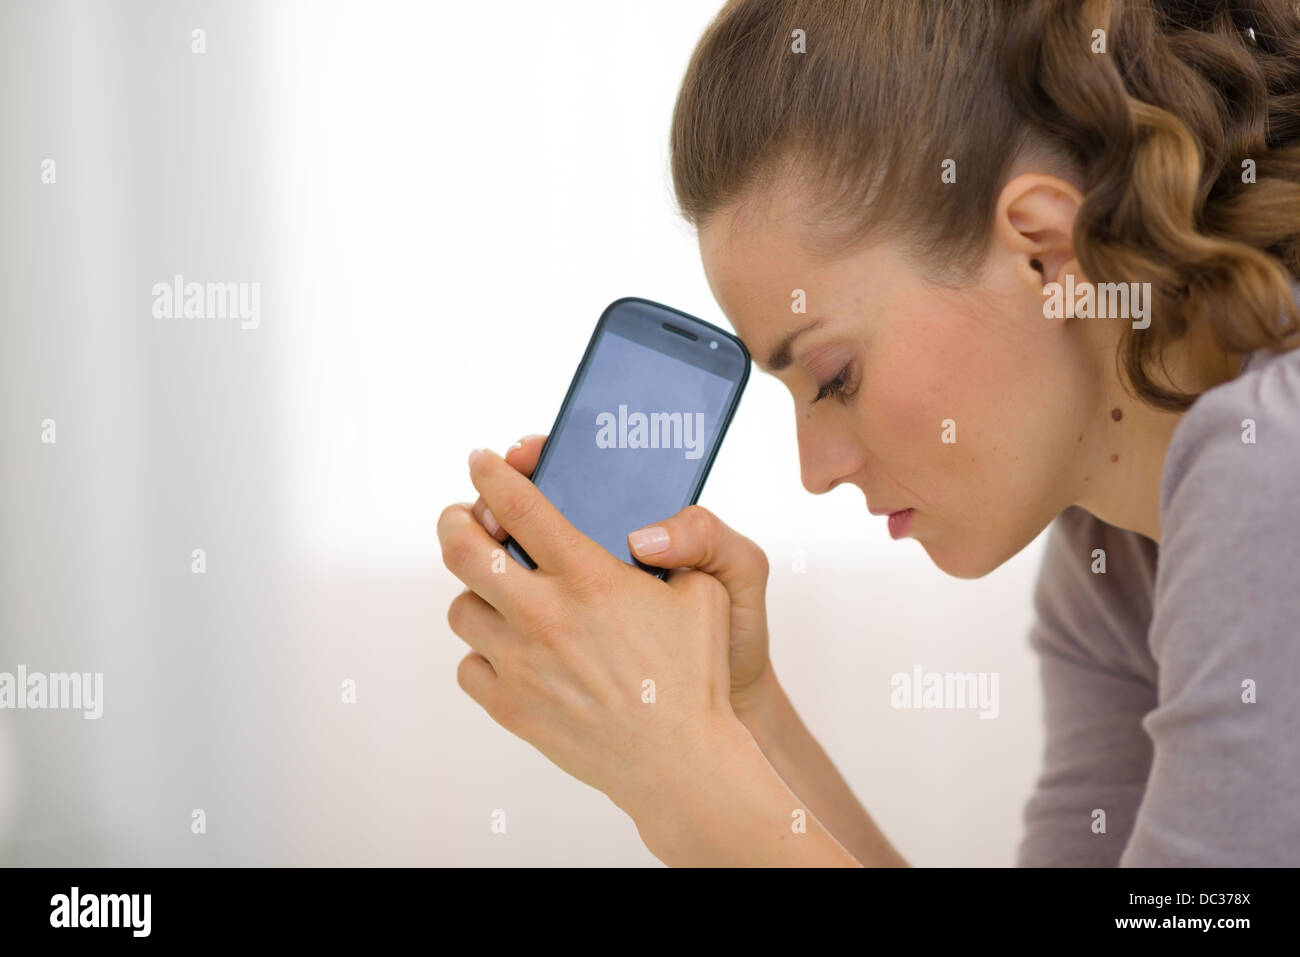 Portrait of stressed young woman with cell phone - Stock Image